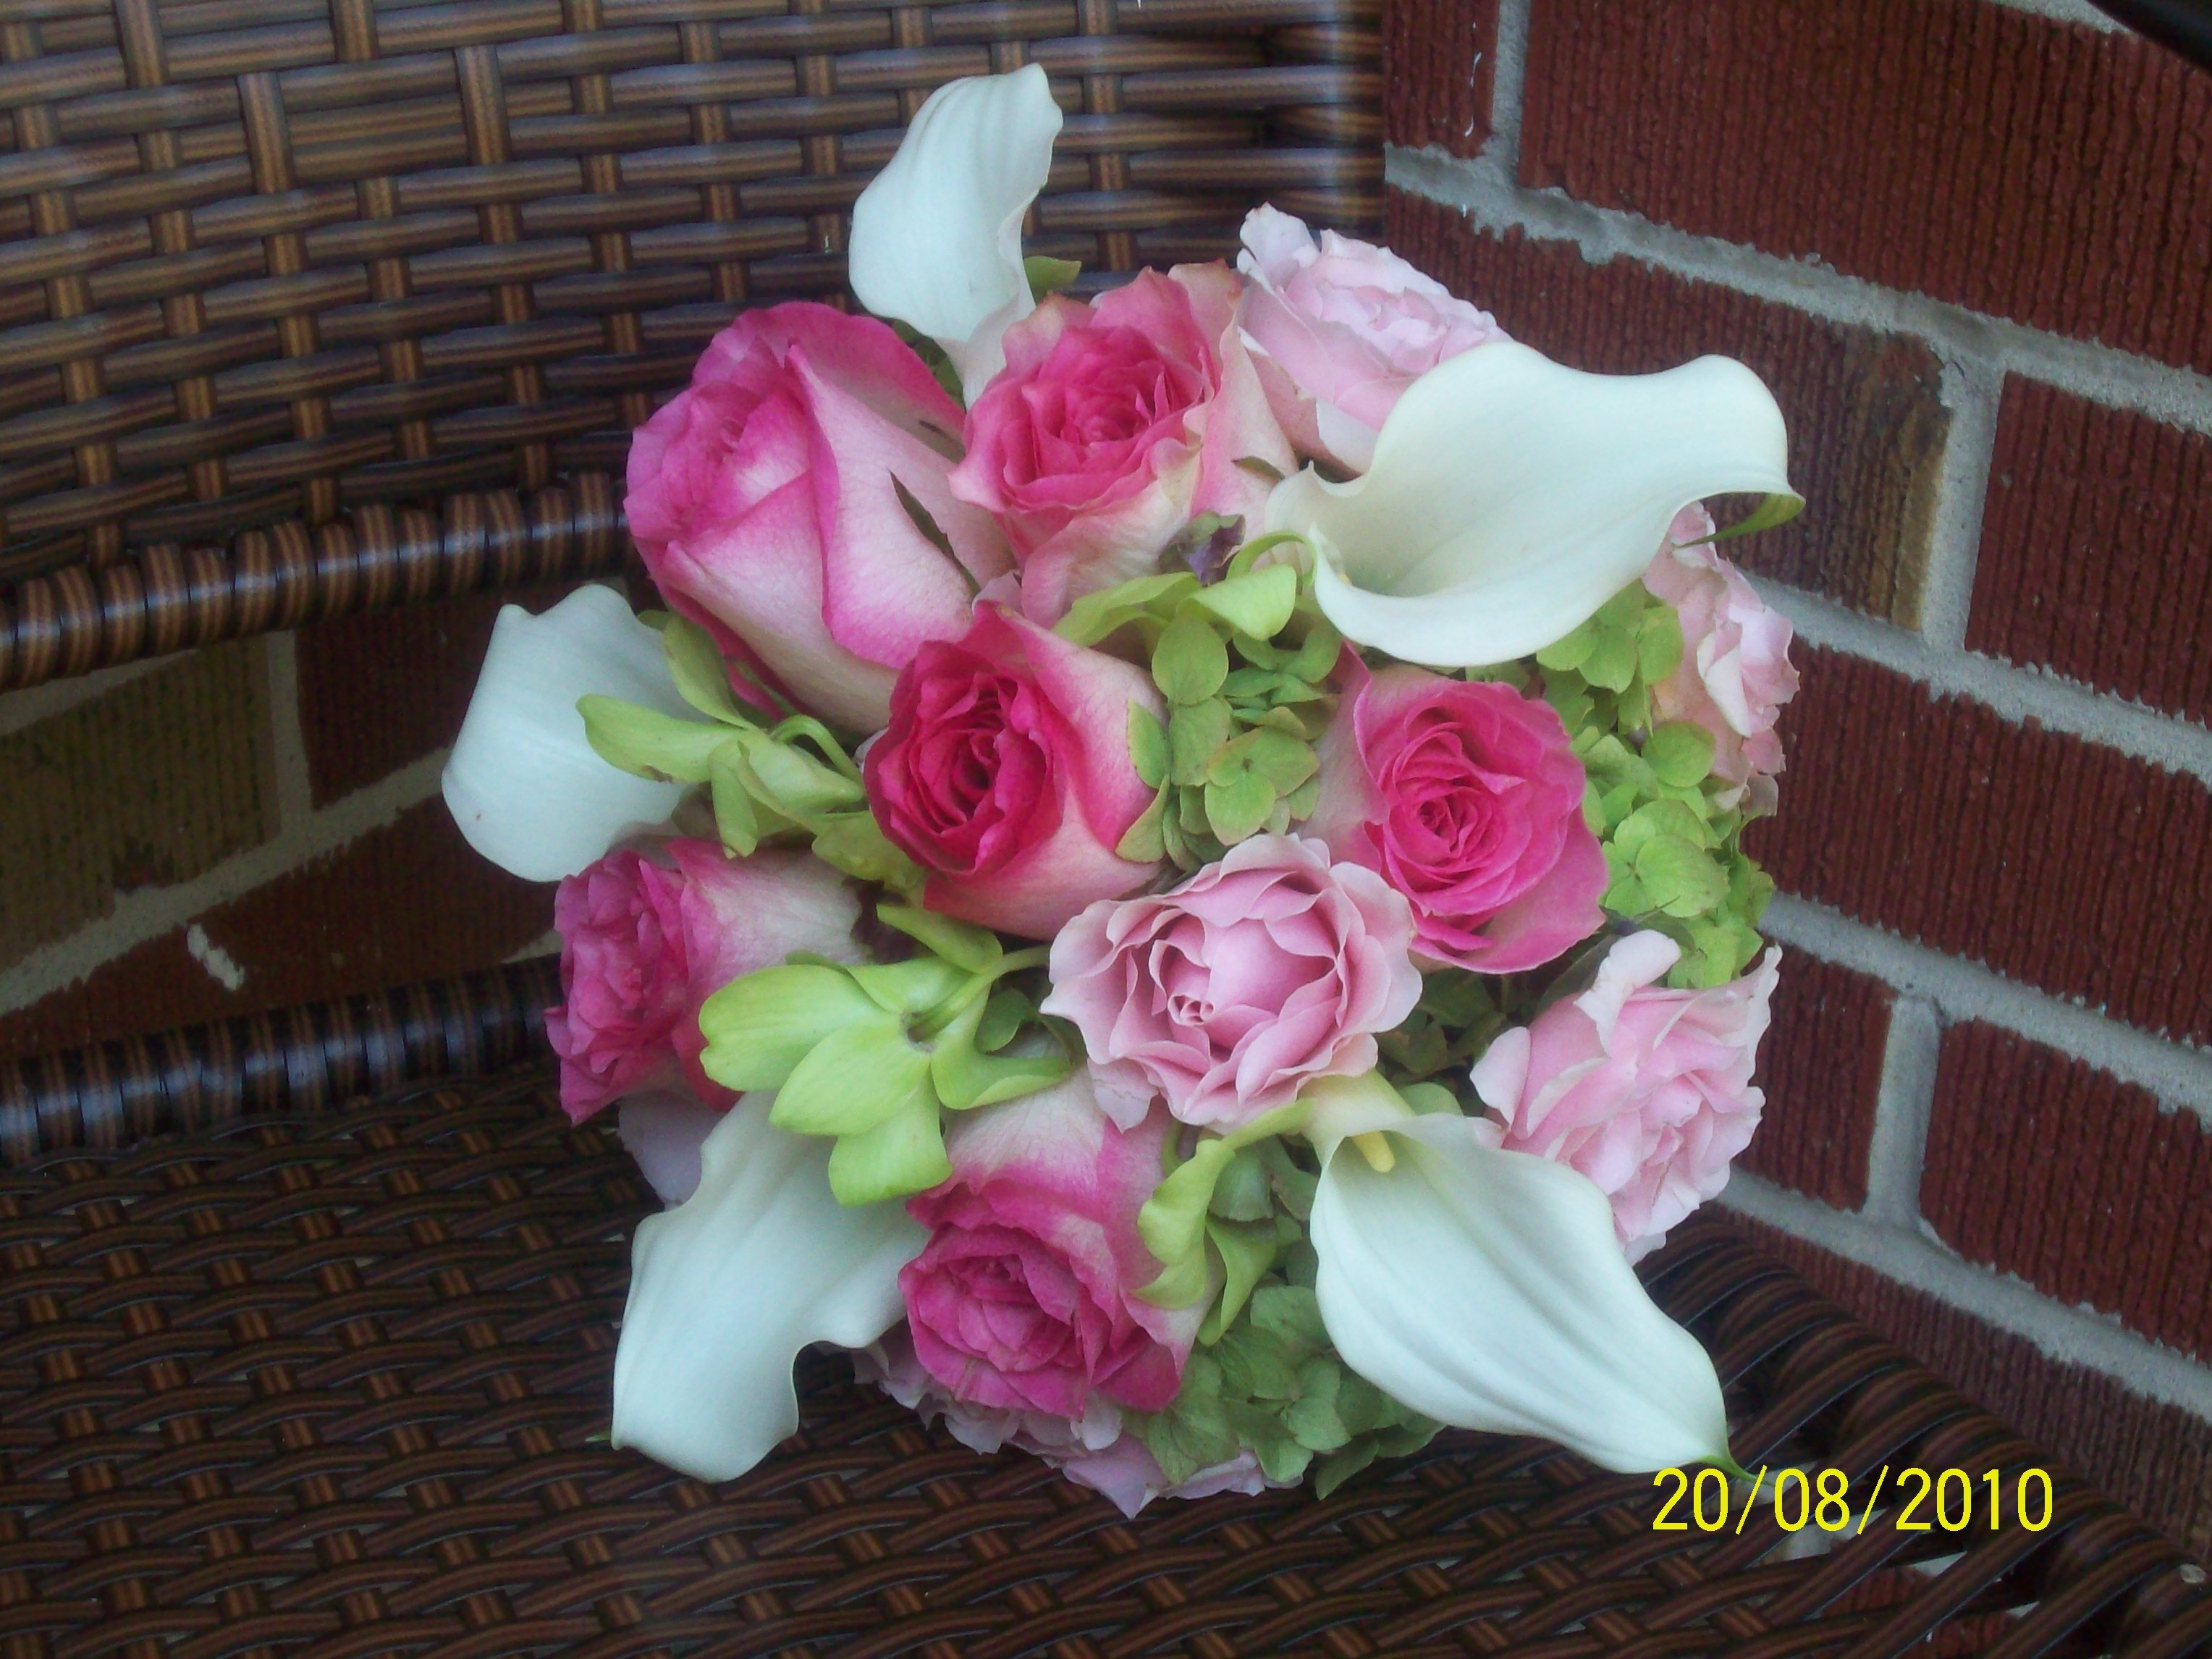 Flowers & Decor, Bridesmaids, Bridesmaids Dresses, Fashion, white, pink, green, Bridesmaid Bouquets, Flowers, Flower Wedding Dresses